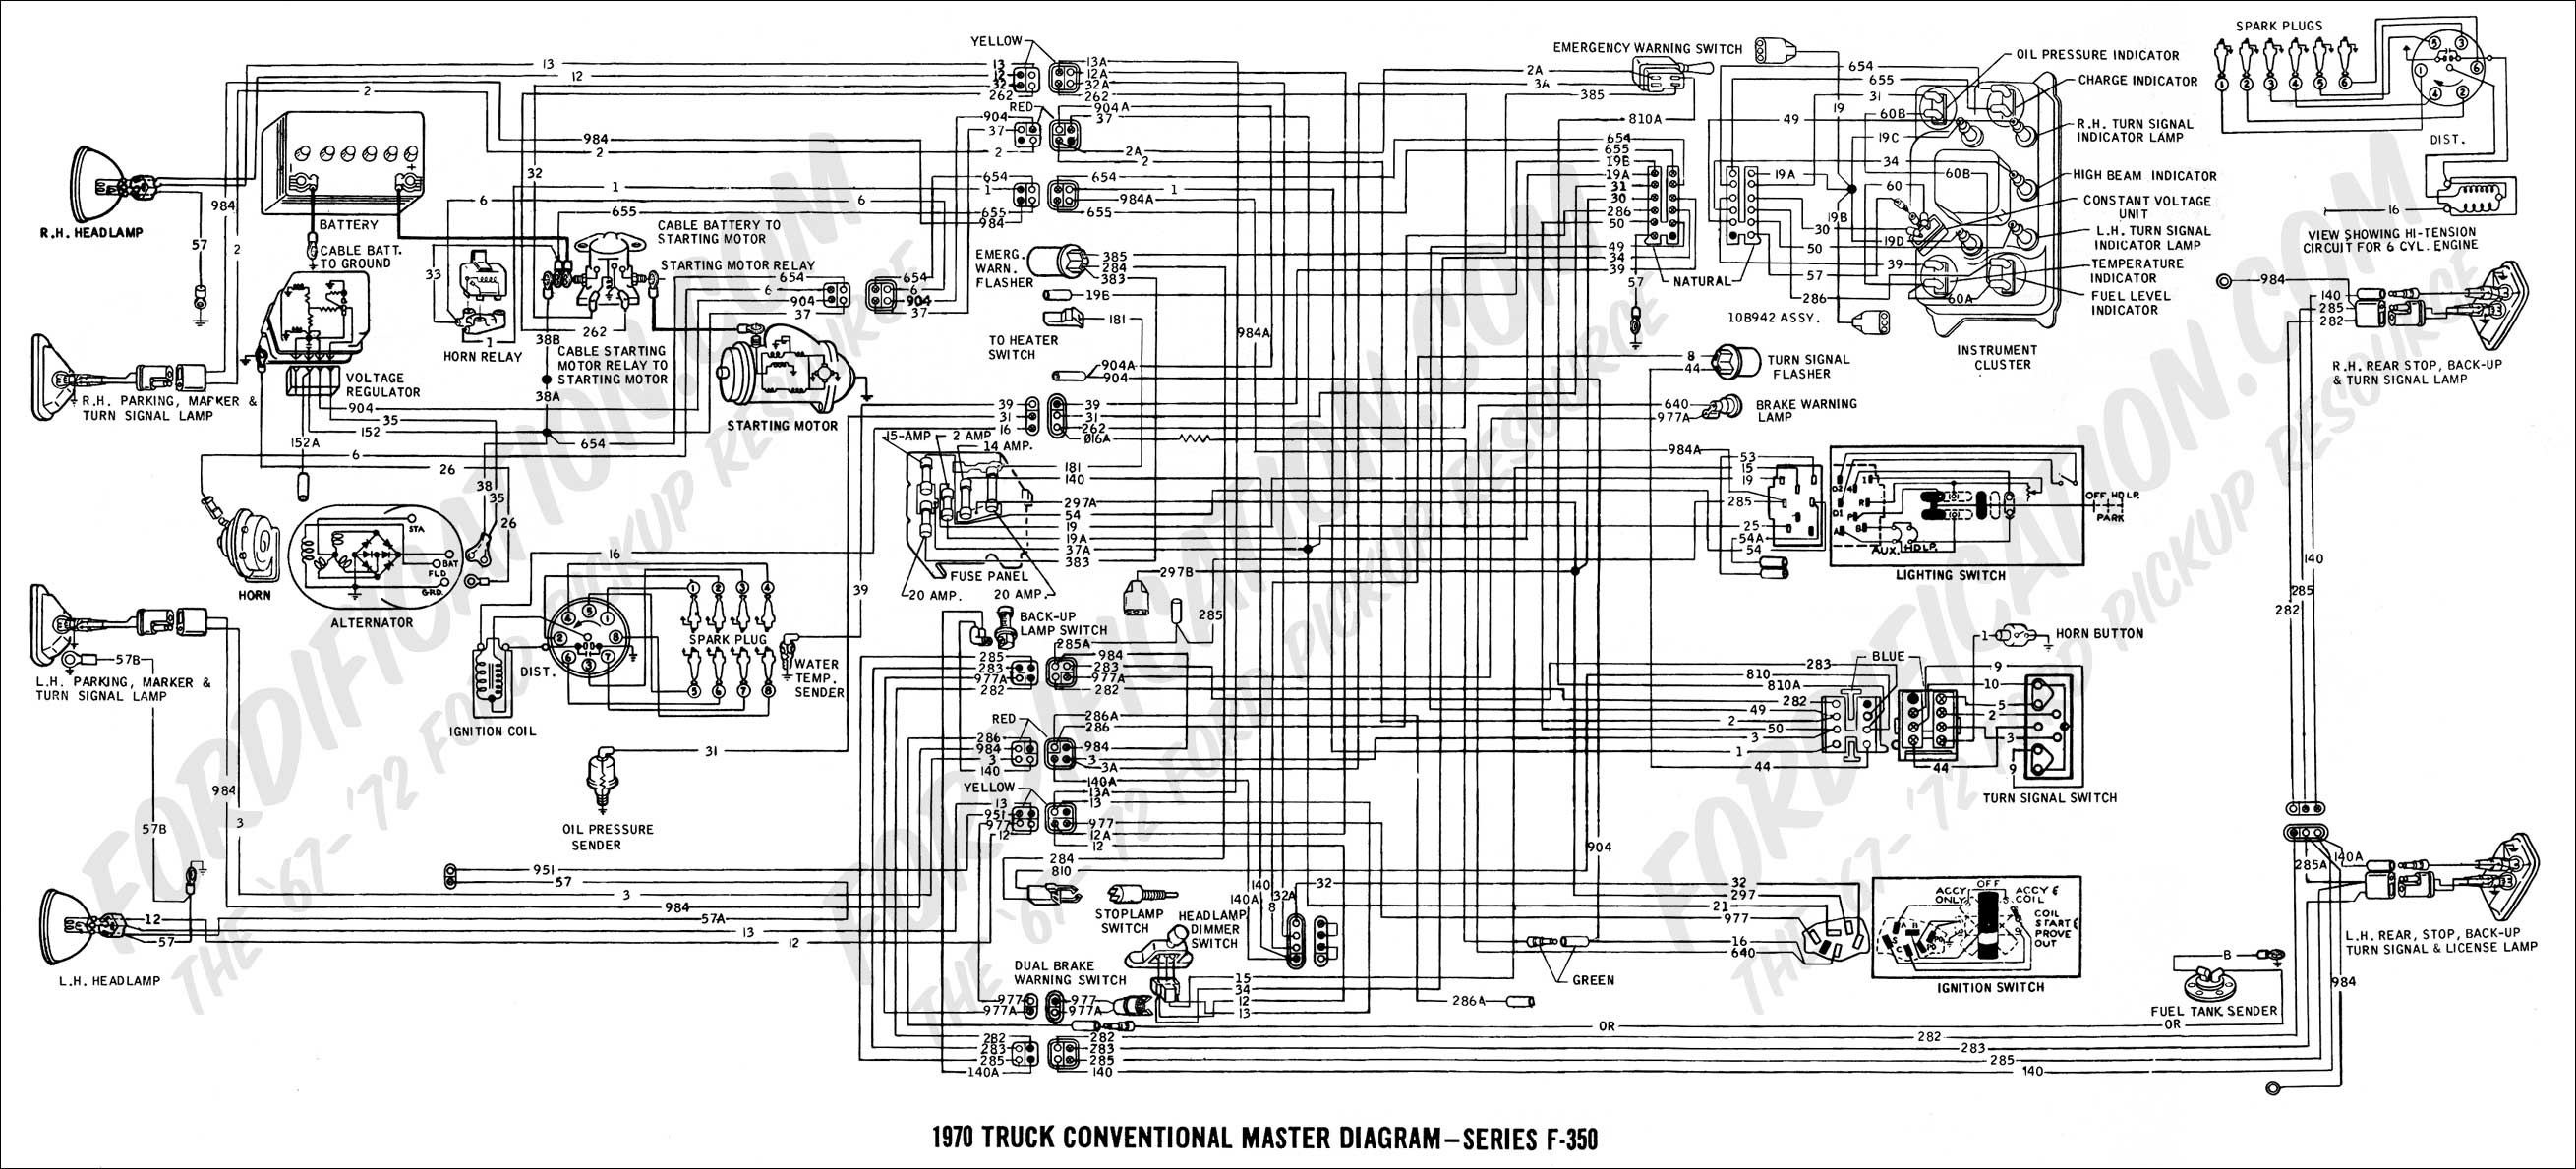 2006 f150 headlight wiring diagram 2006 image 2006 ford f 350 wire diagram 2006 wiring diagrams on 2006 f150 headlight wiring diagram